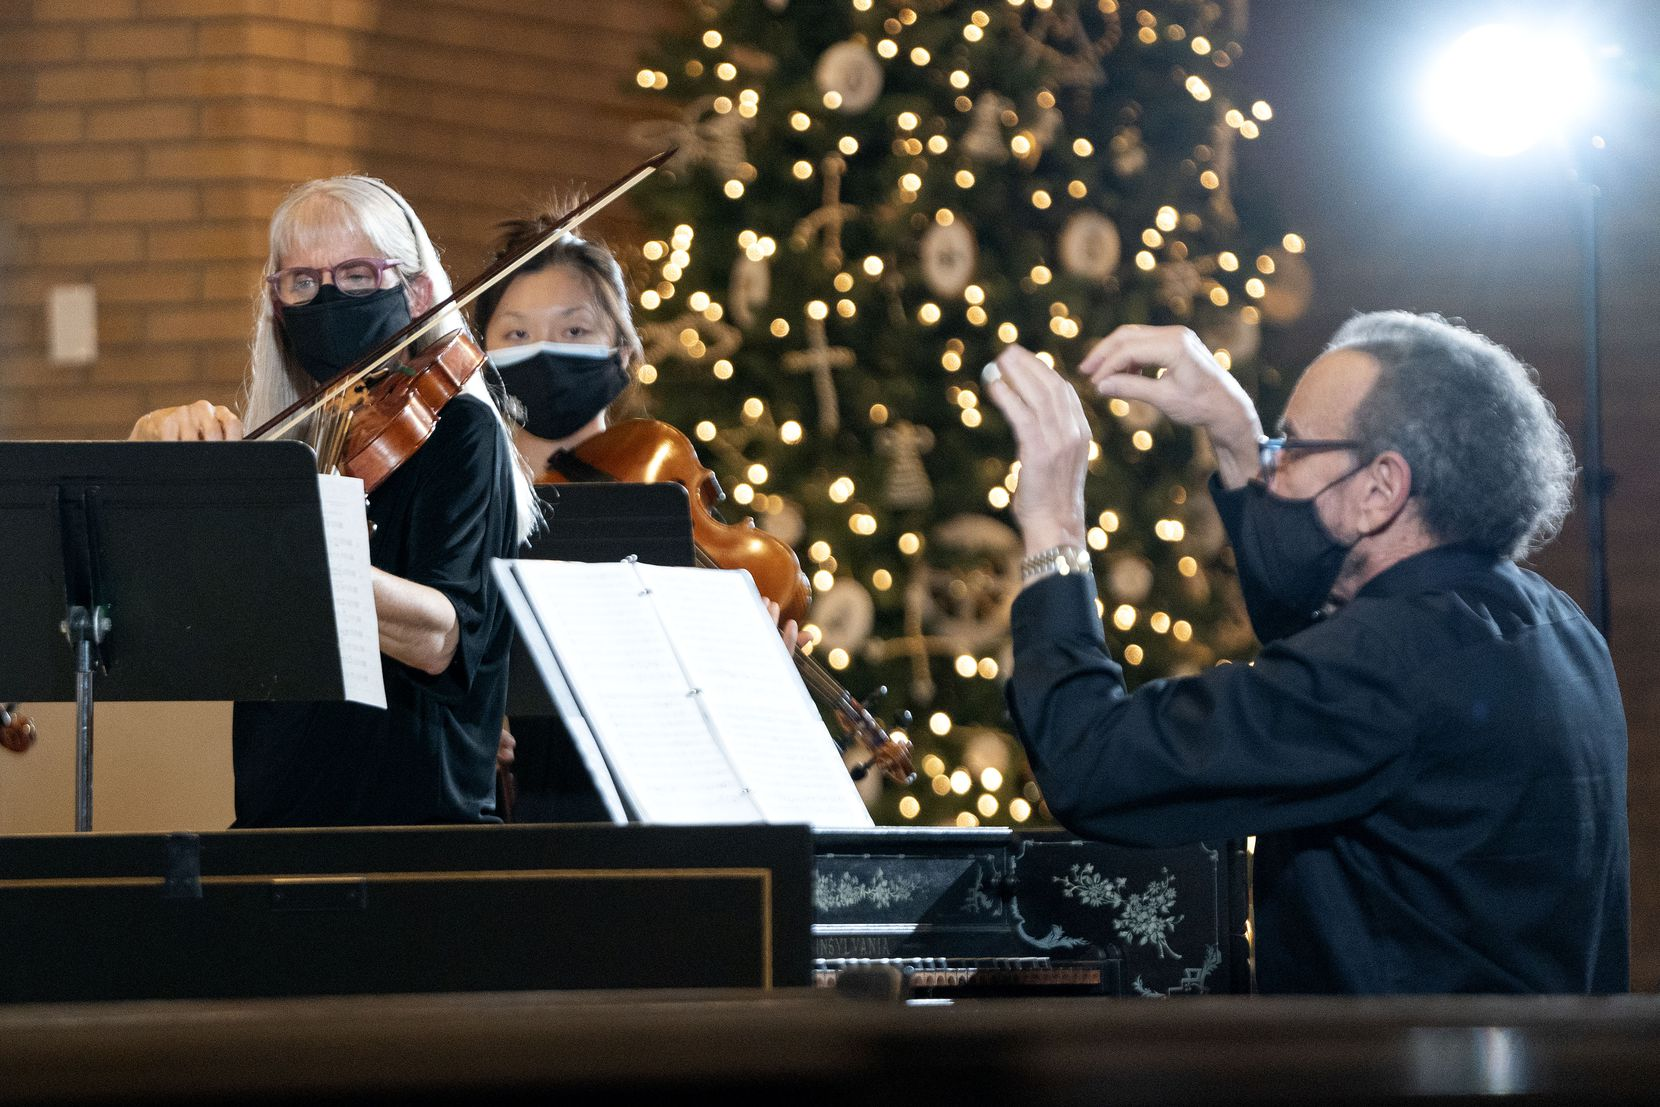 Violinist Clare Adkins Cason (left)  plays as James Richman  conducts during the Dallas Bach Society's Christmas Concertos concert, Saturday, Dec. 5, 2020 at Zion Lutheran Church in Dallas.